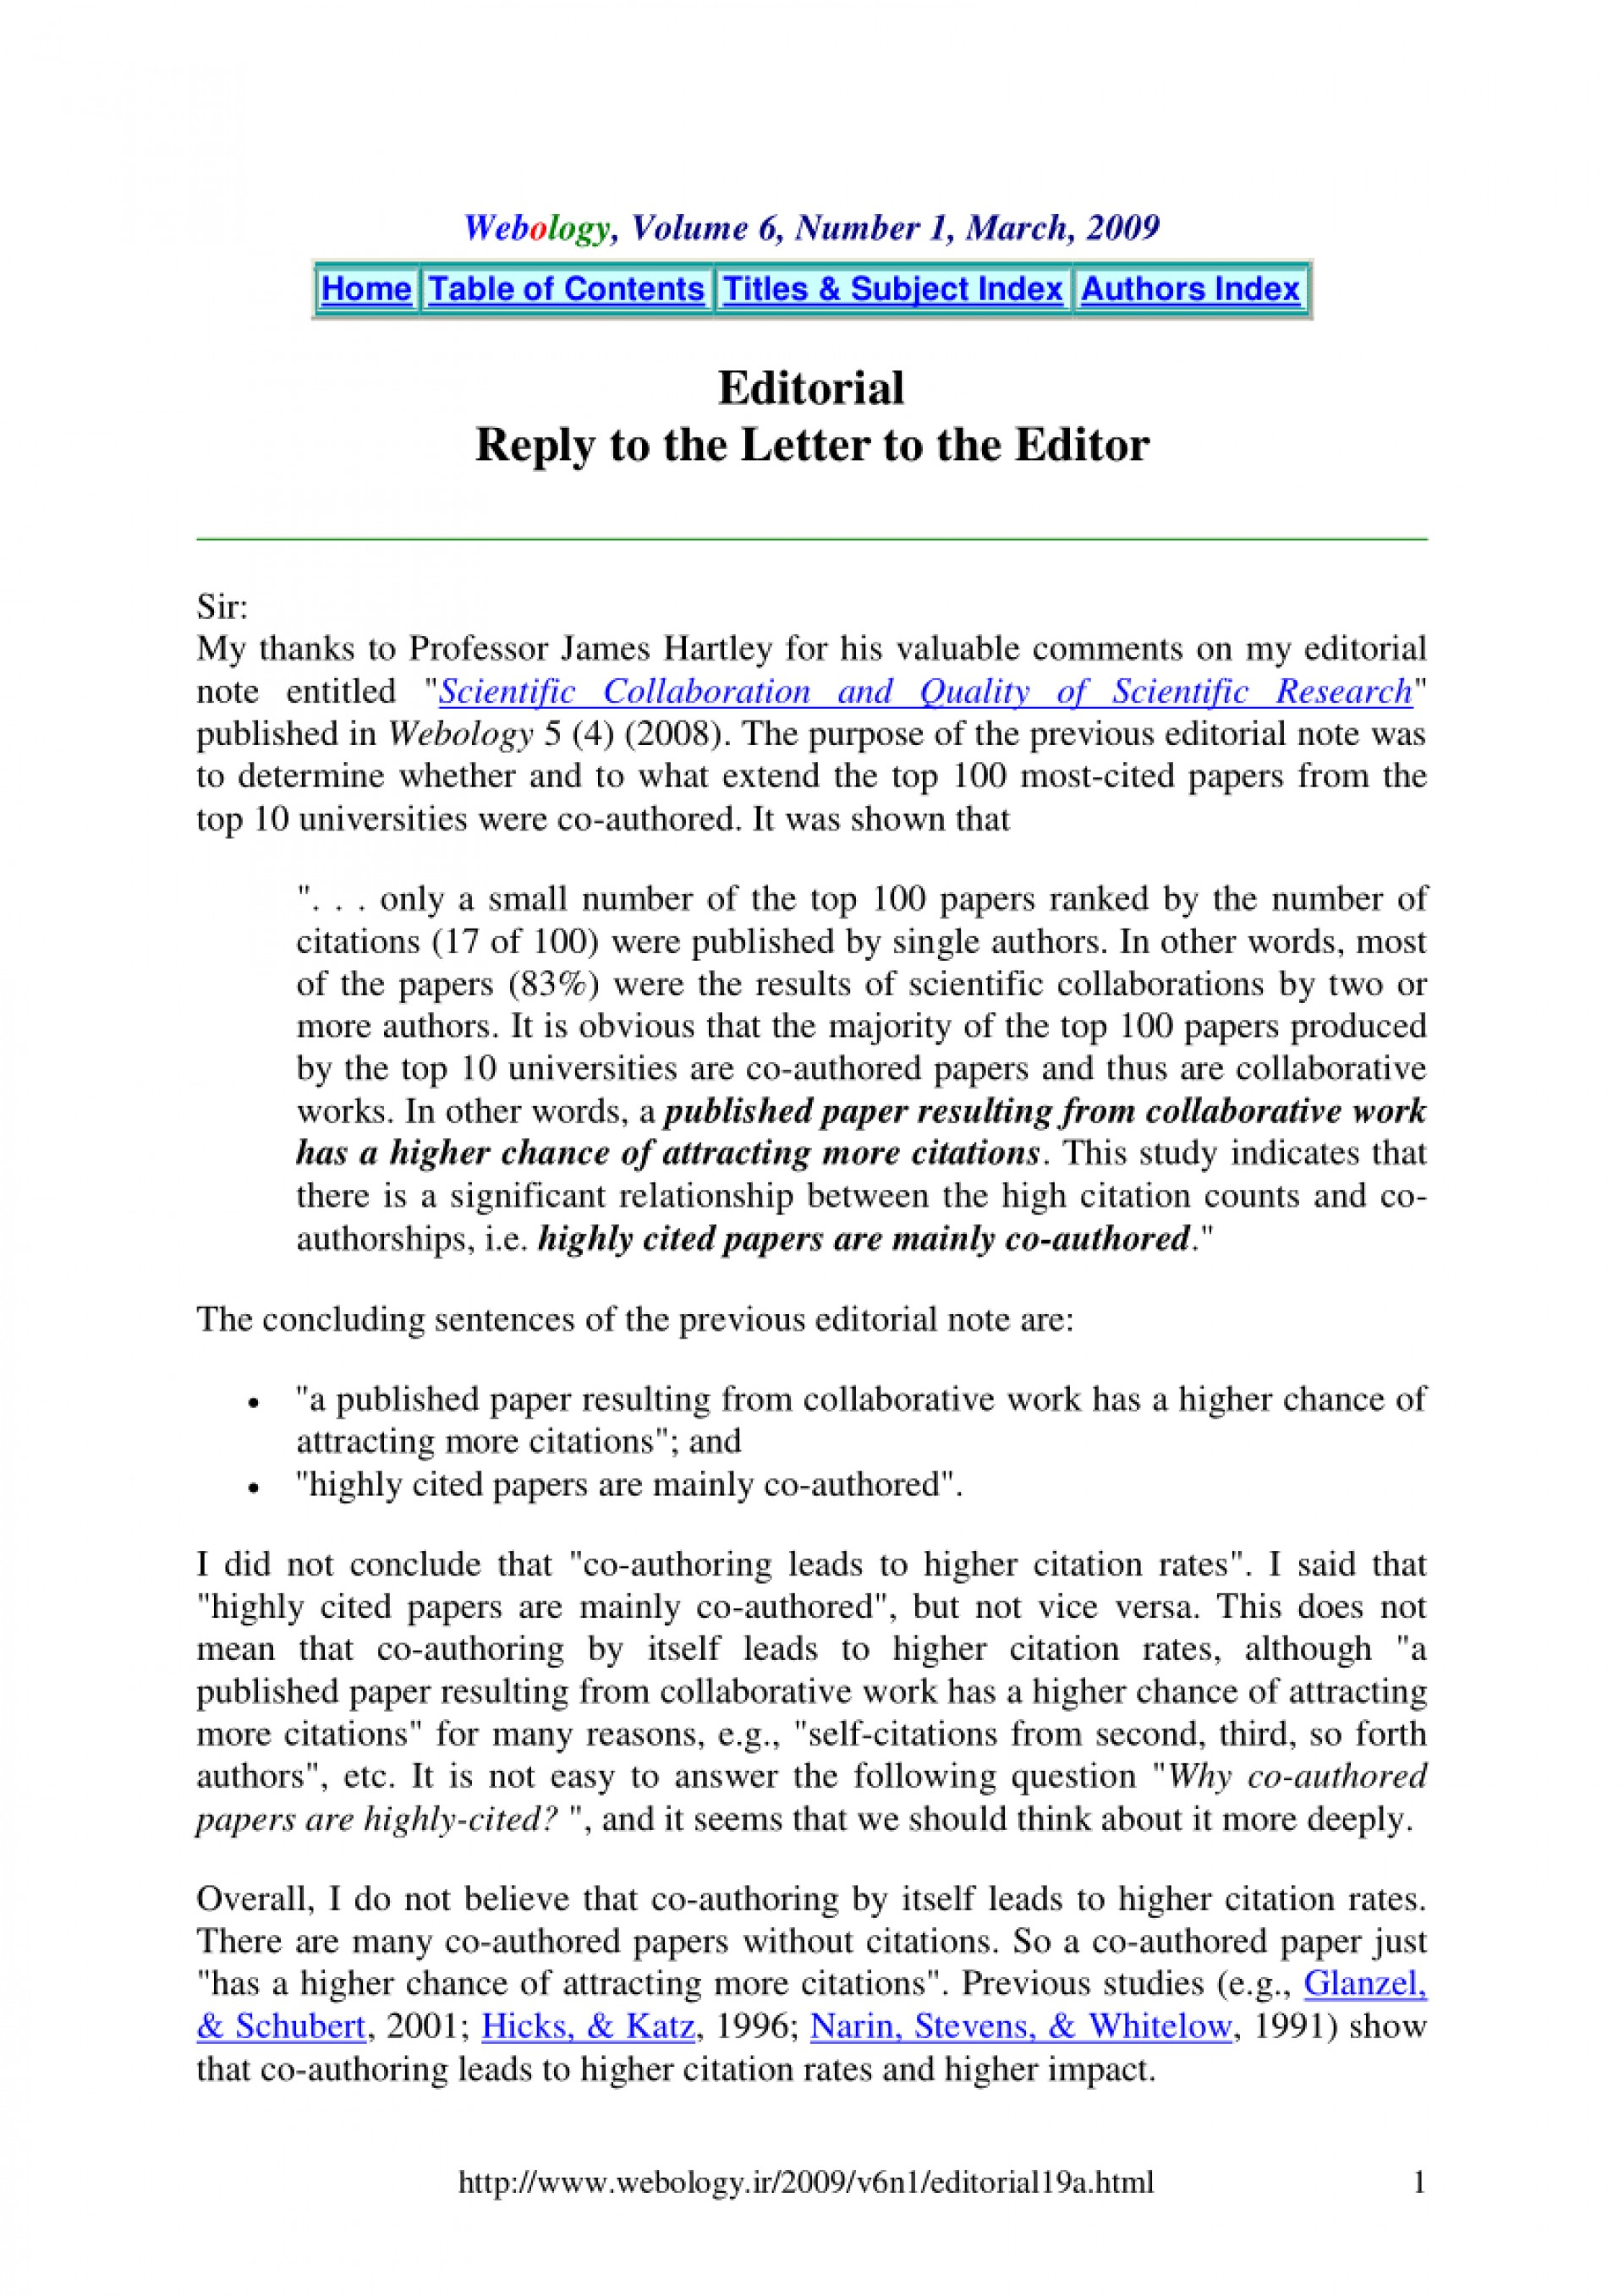 001 Research Paper Editor Breathtaking Free Editing Software On Text 1920